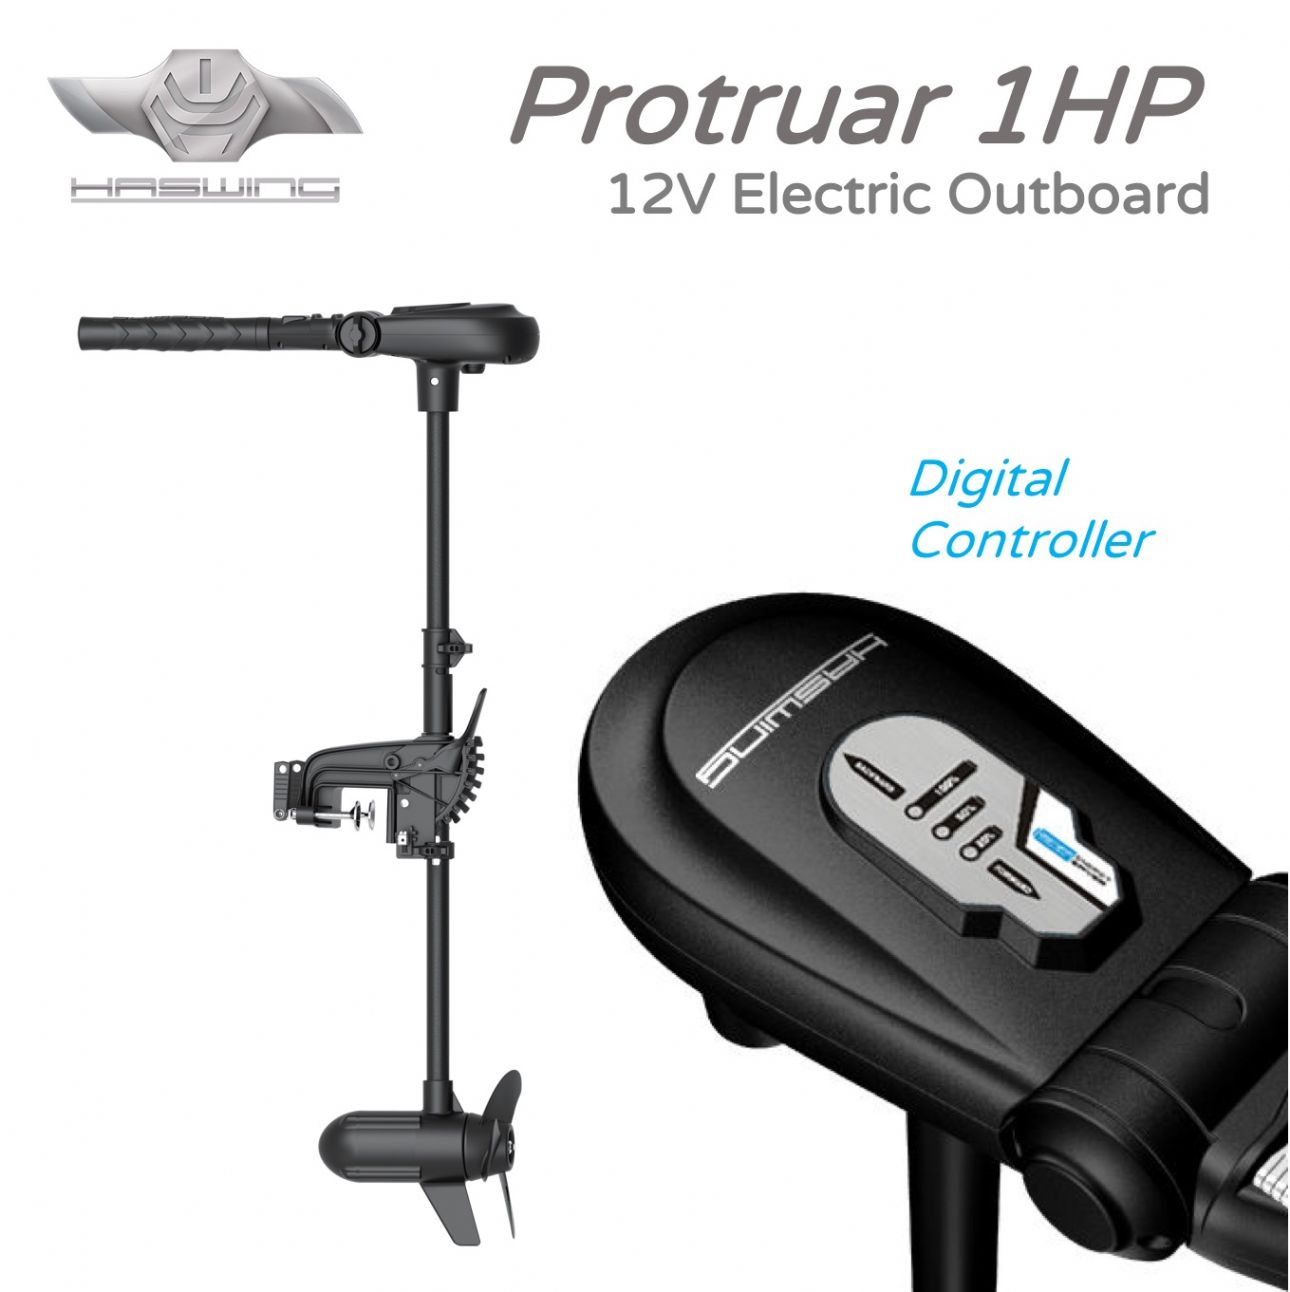 HASWING Protruar 1HP Electric Outboard 12V -